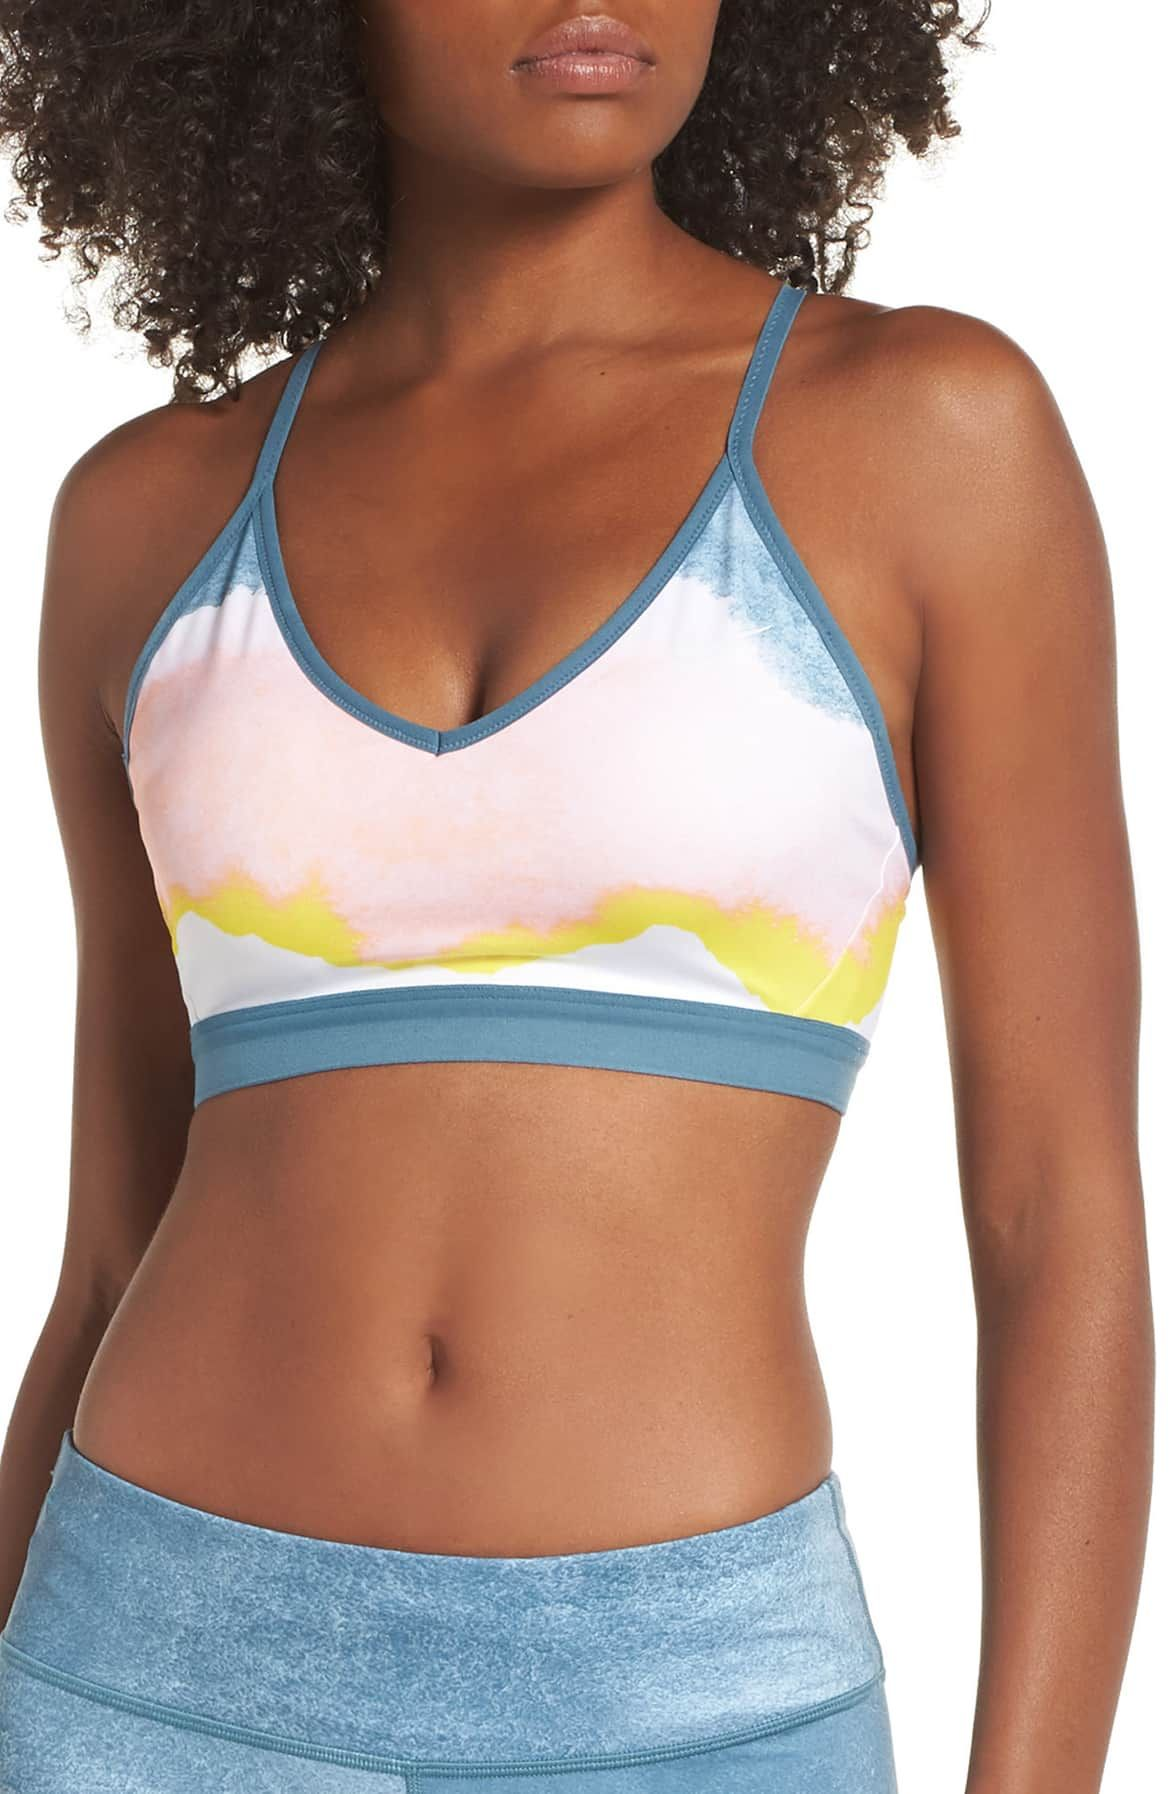 283c115163645 Nike indy artist sports bra things i want clothes jpg 1170x1794 Artist  without bra top